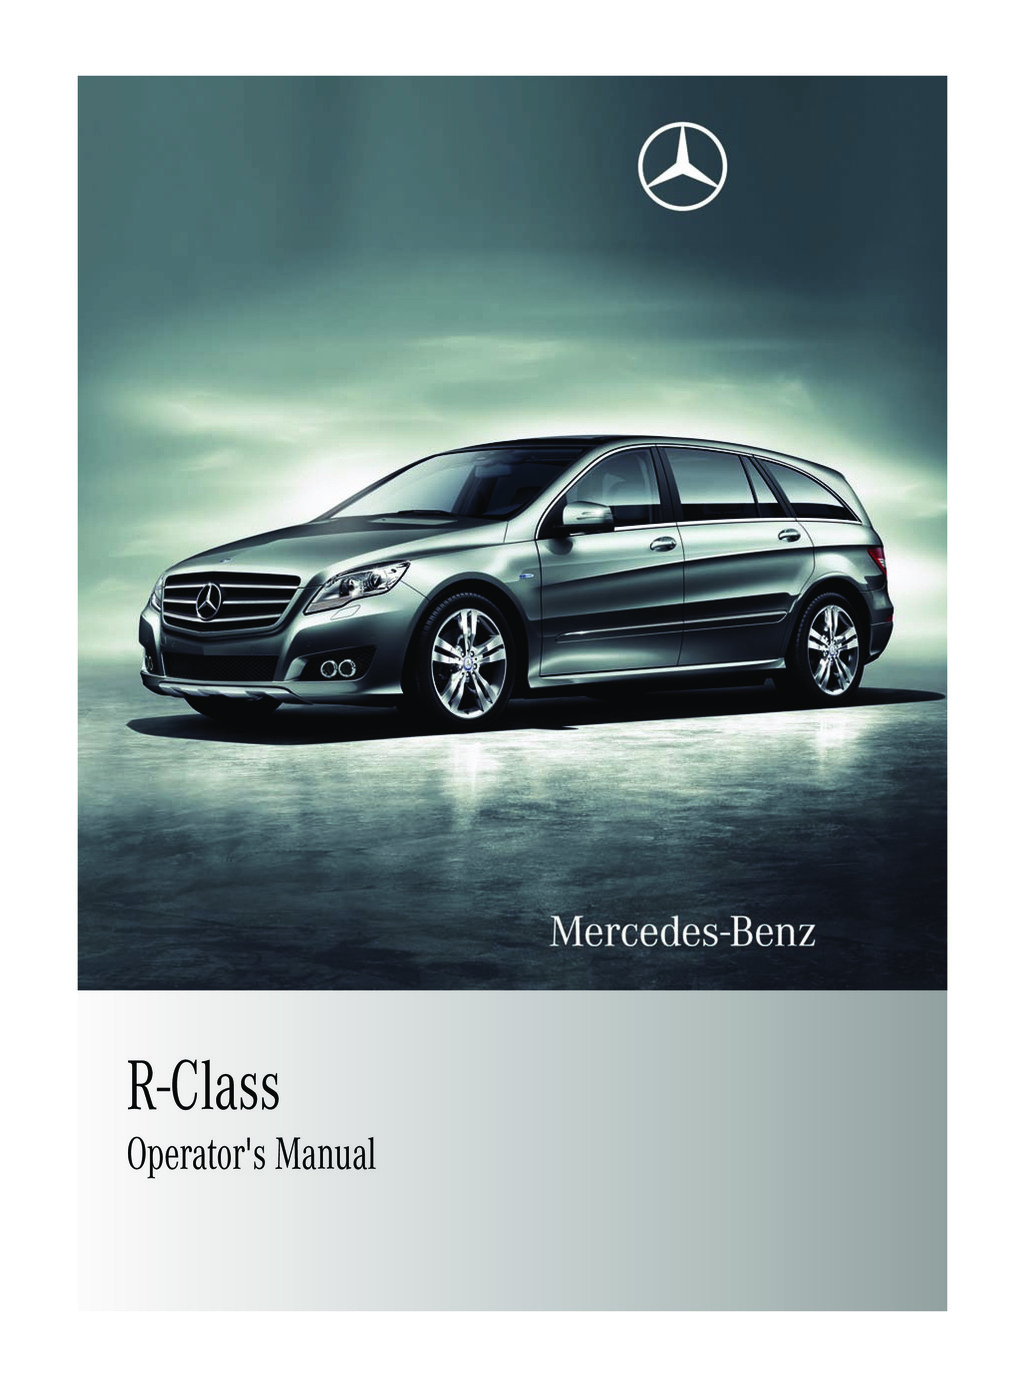 2011 Mercedes-Benz R Class owners manual